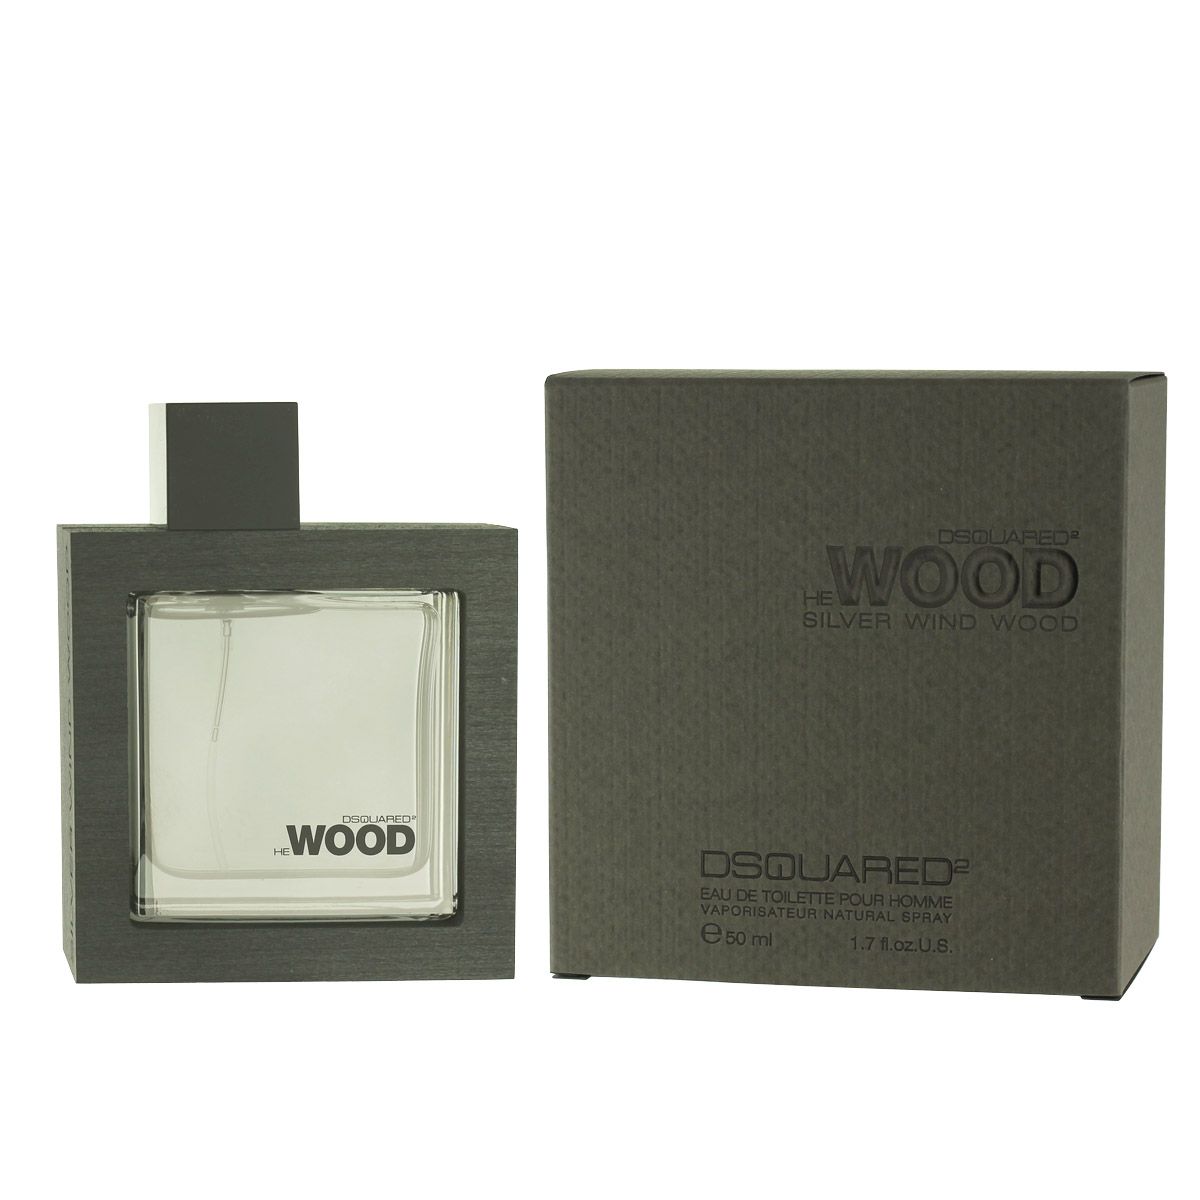 Dsquared2 He Wood Silver Wind Wood EDT 50 ml M